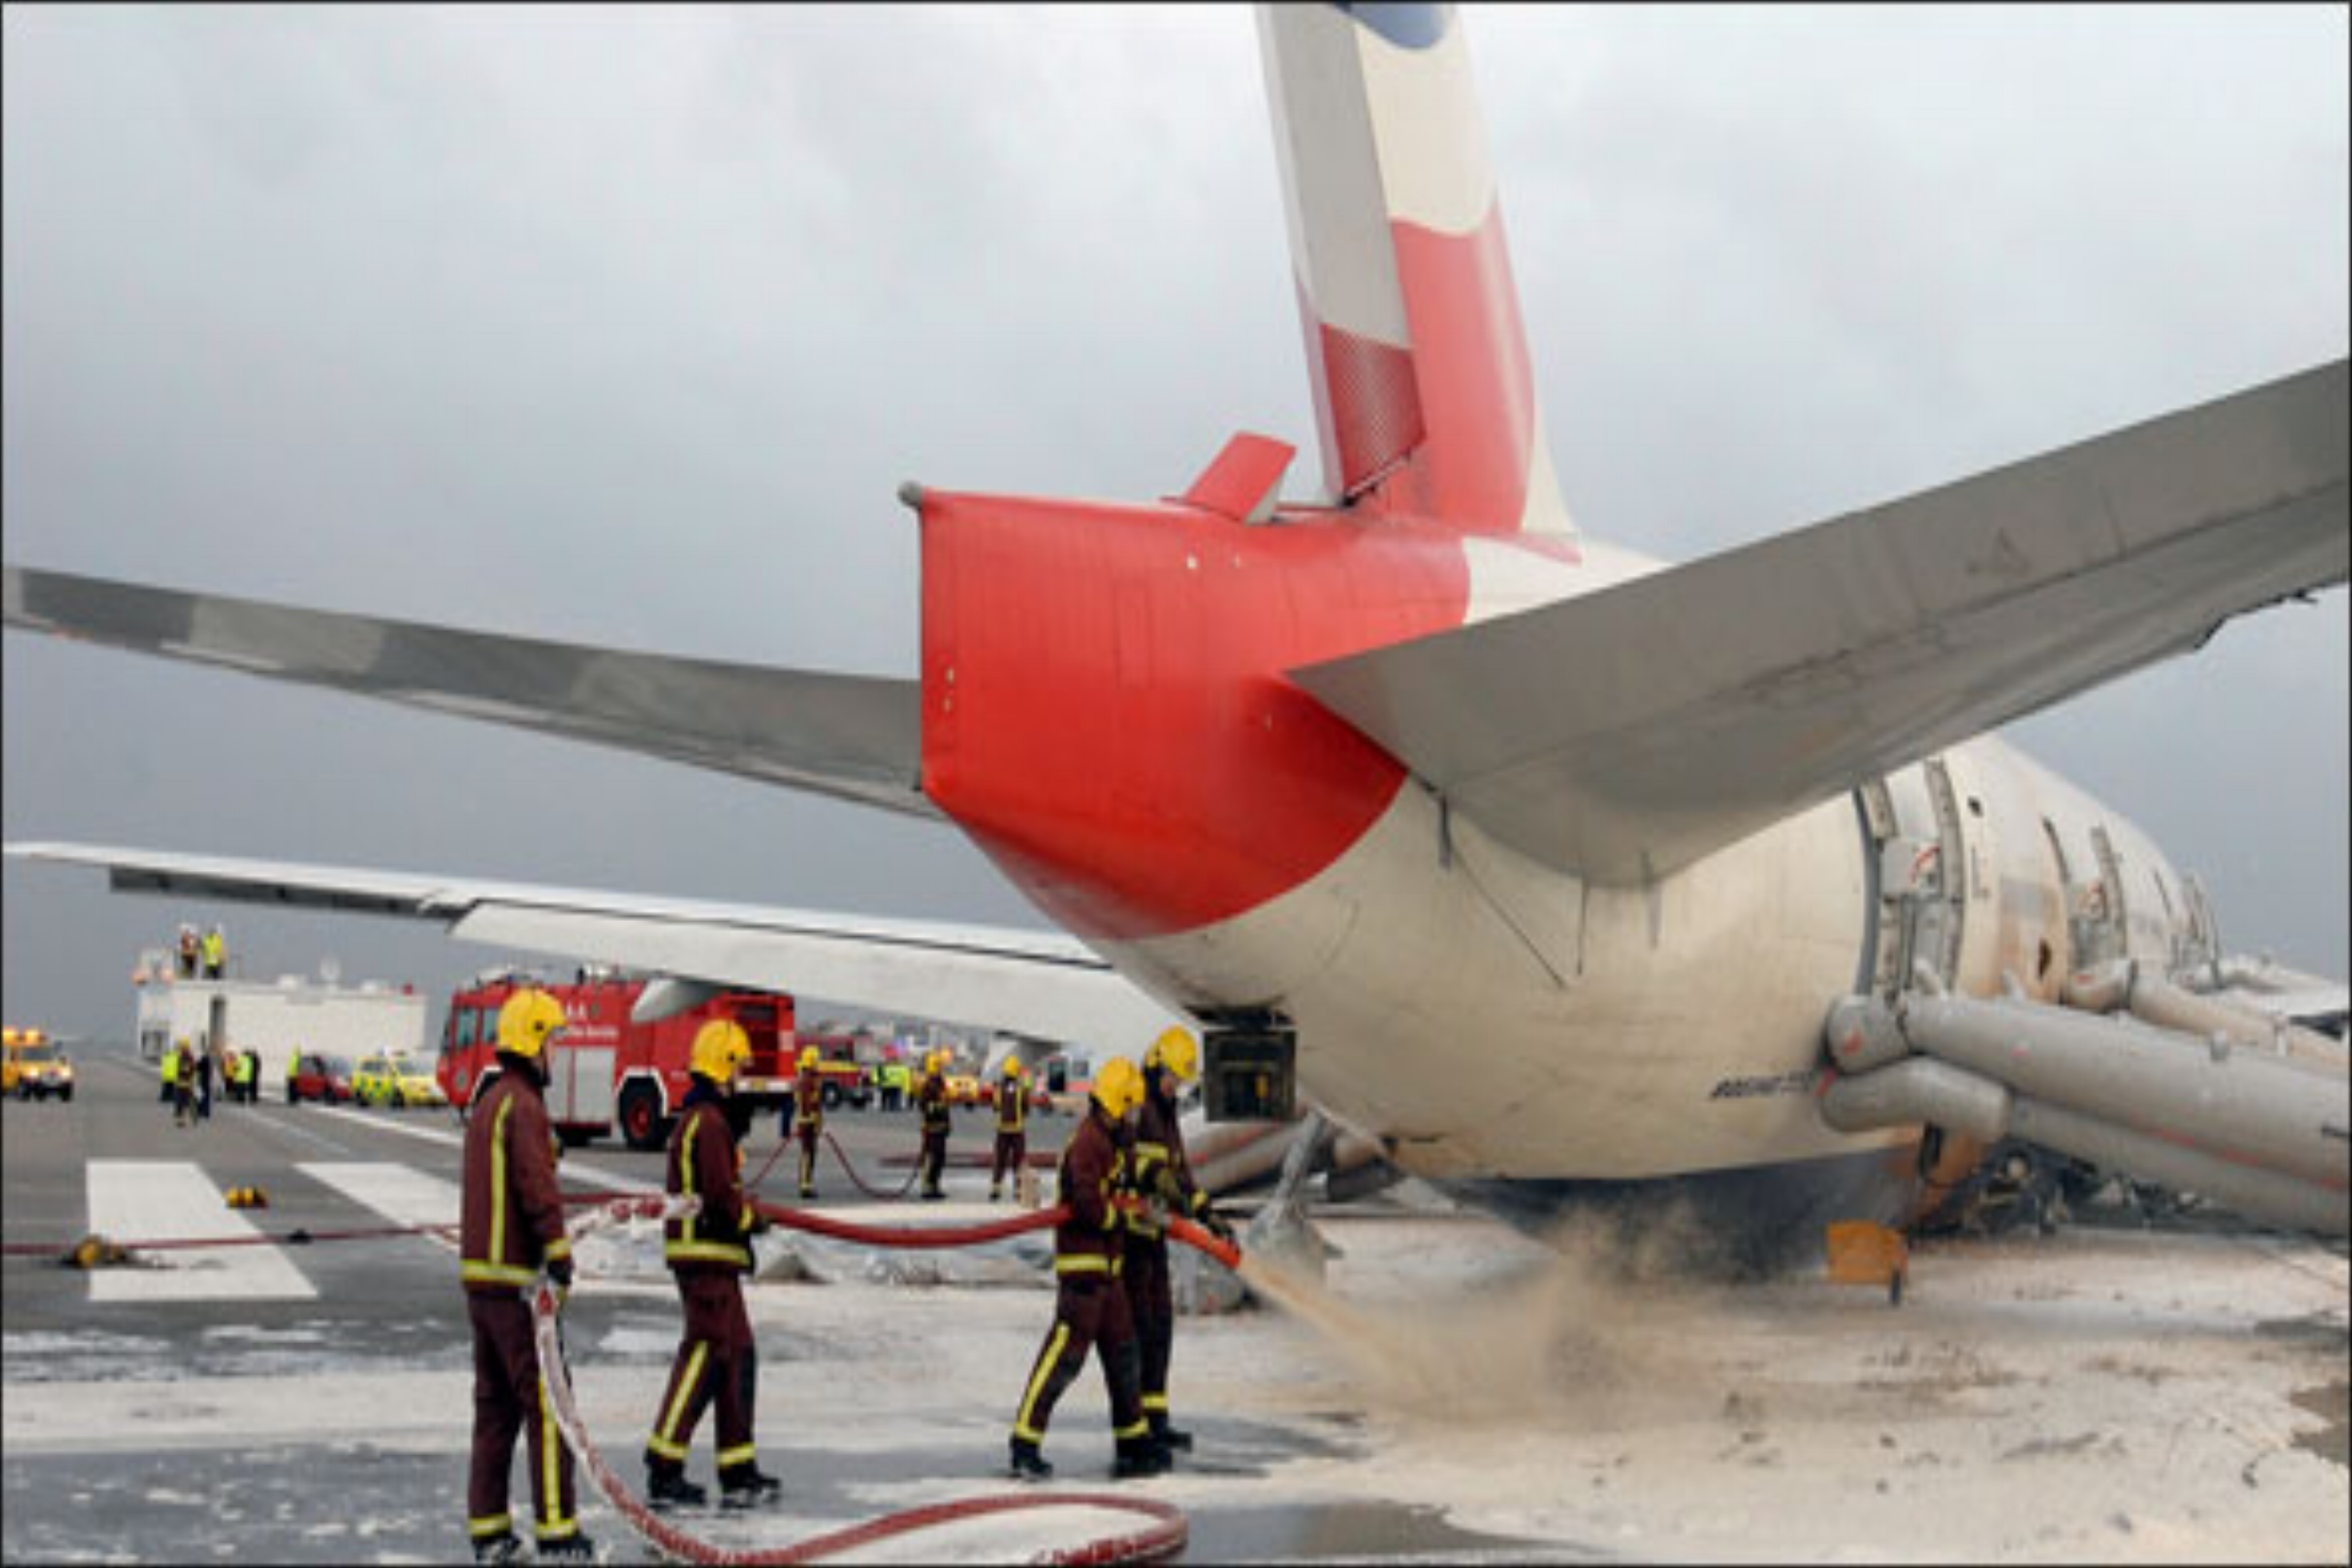 Aviation - Fire and rescue service provision, including planning, training, emergency response and equipment for military and domestic aircraft.